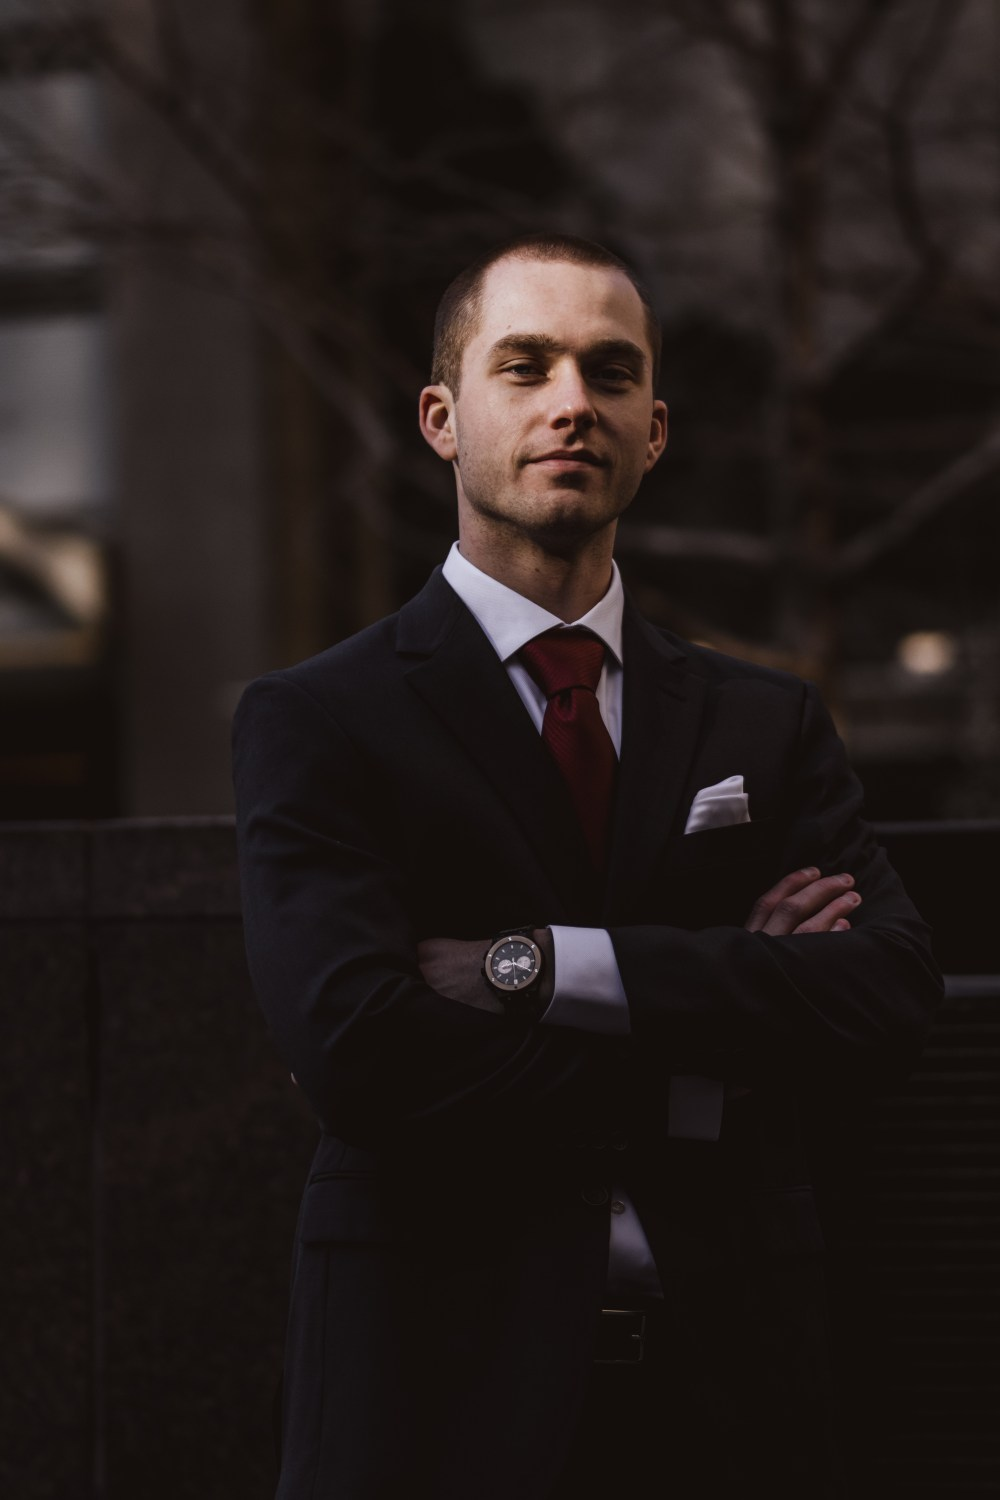 man in suit pictures